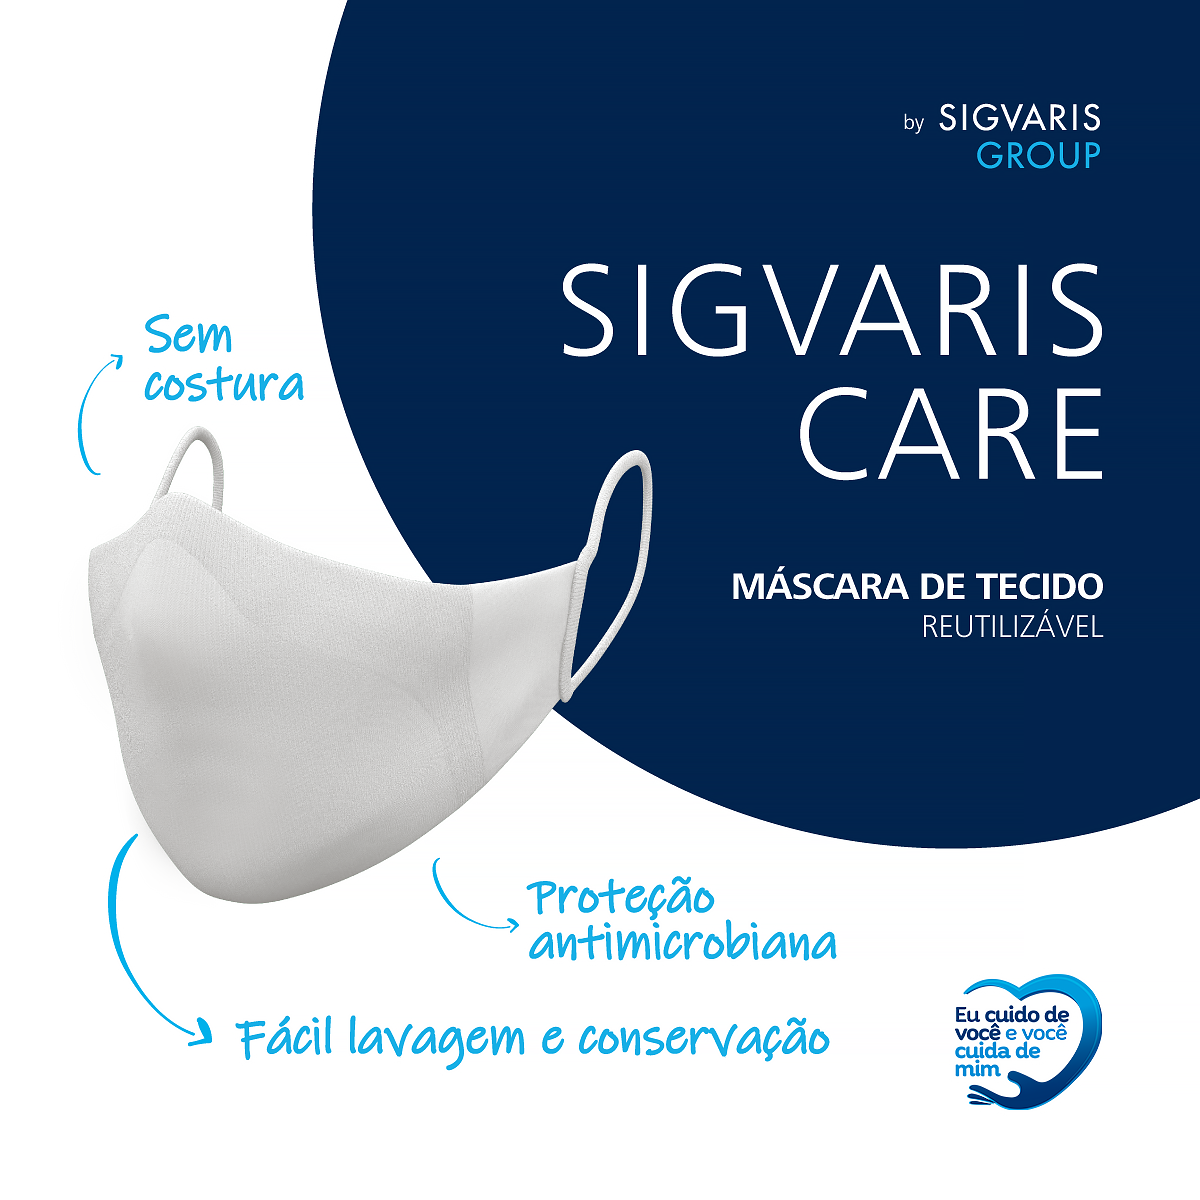 mascara-sigvaris-care.png